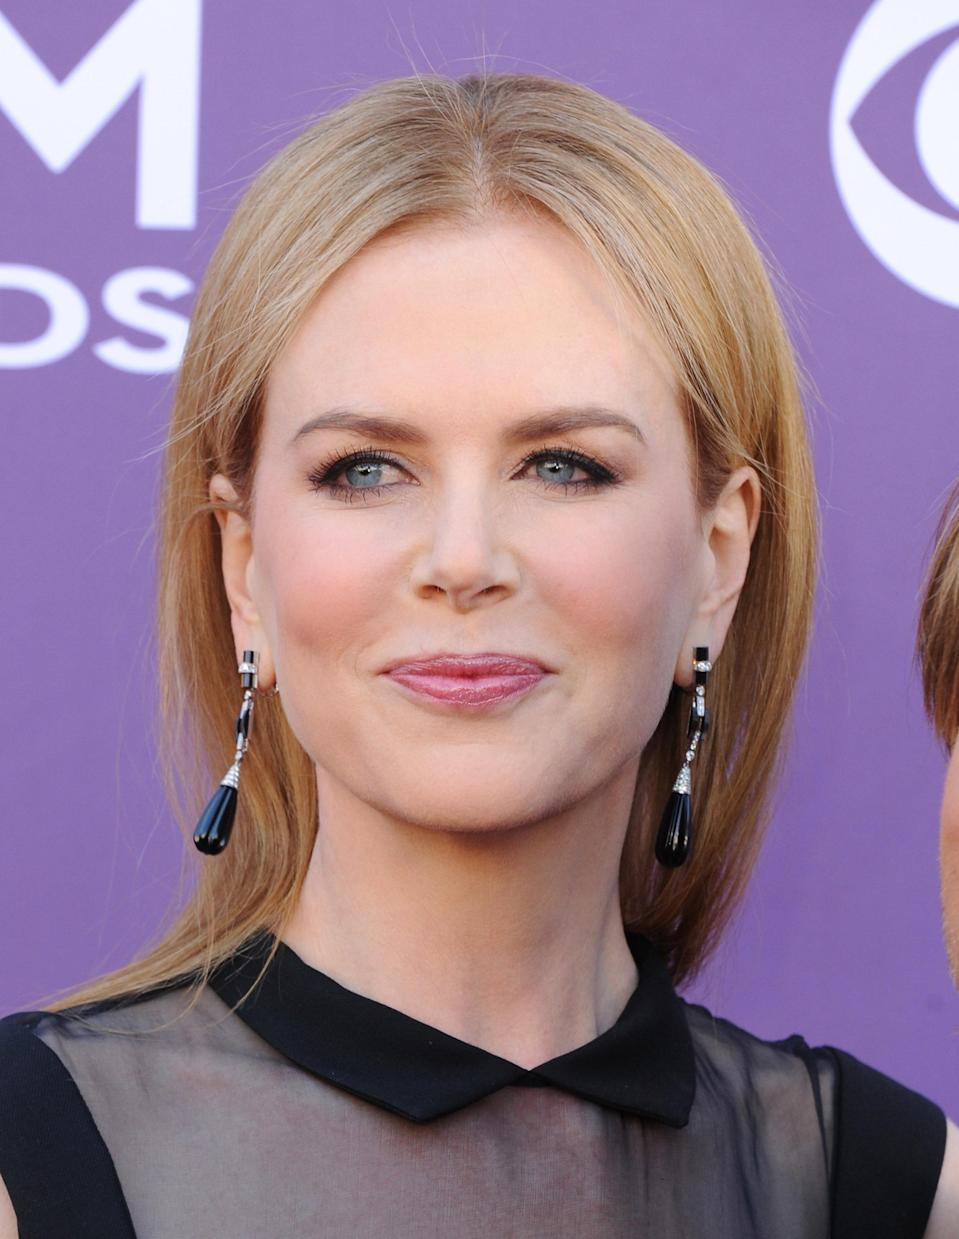 """<div class=""""caption-credit""""> Photo by: (Photo by Jon Kopaloff/FilmMagic)</div>Last year, Nicole Kidman ended years of speculation by finally admitting to <a rel=""""nofollow noopener"""" href=""""http://yhoo.it/HE1pFQ"""" target=""""_blank"""" data-ylk=""""slk:trying Botox"""" class=""""link rapid-noclick-resp"""">trying Botox</a> . """"I didn't like how my face looked afterwards,"""" she told the German Magazine, <i>TV Movie</i>. """"Now I don't use it anymore - I can move my forehead again!"""""""